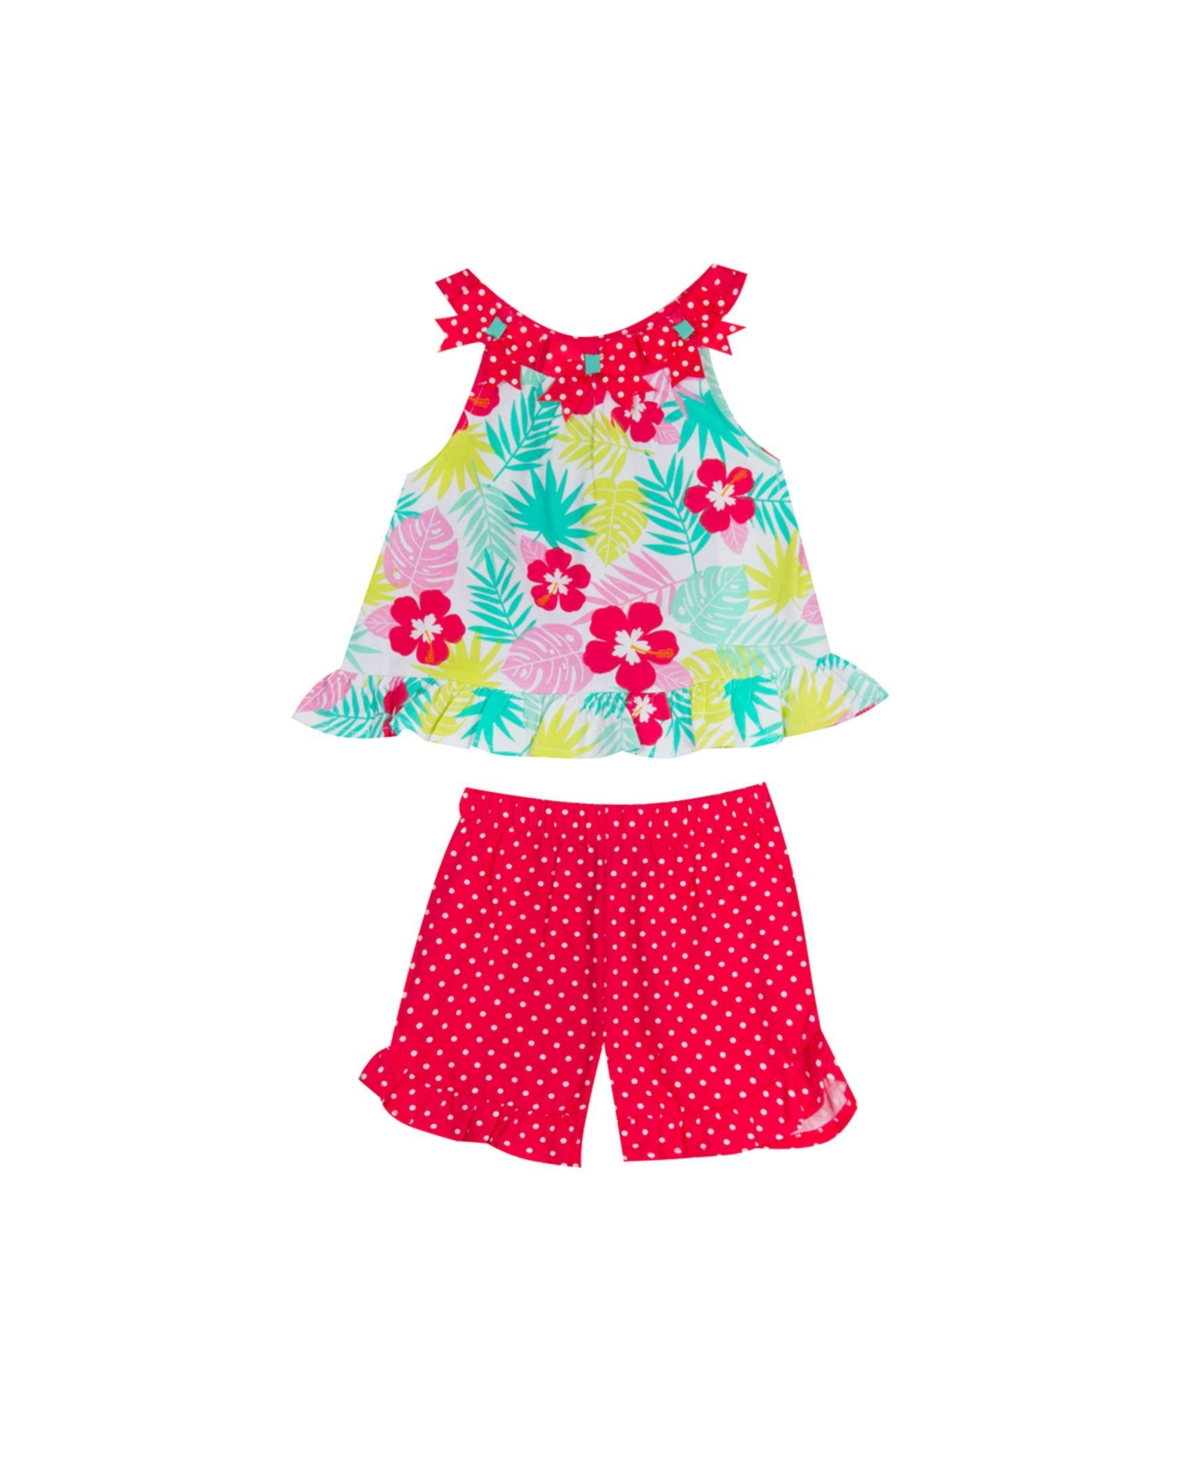 19165814 fpx - Kids & Baby Clothing